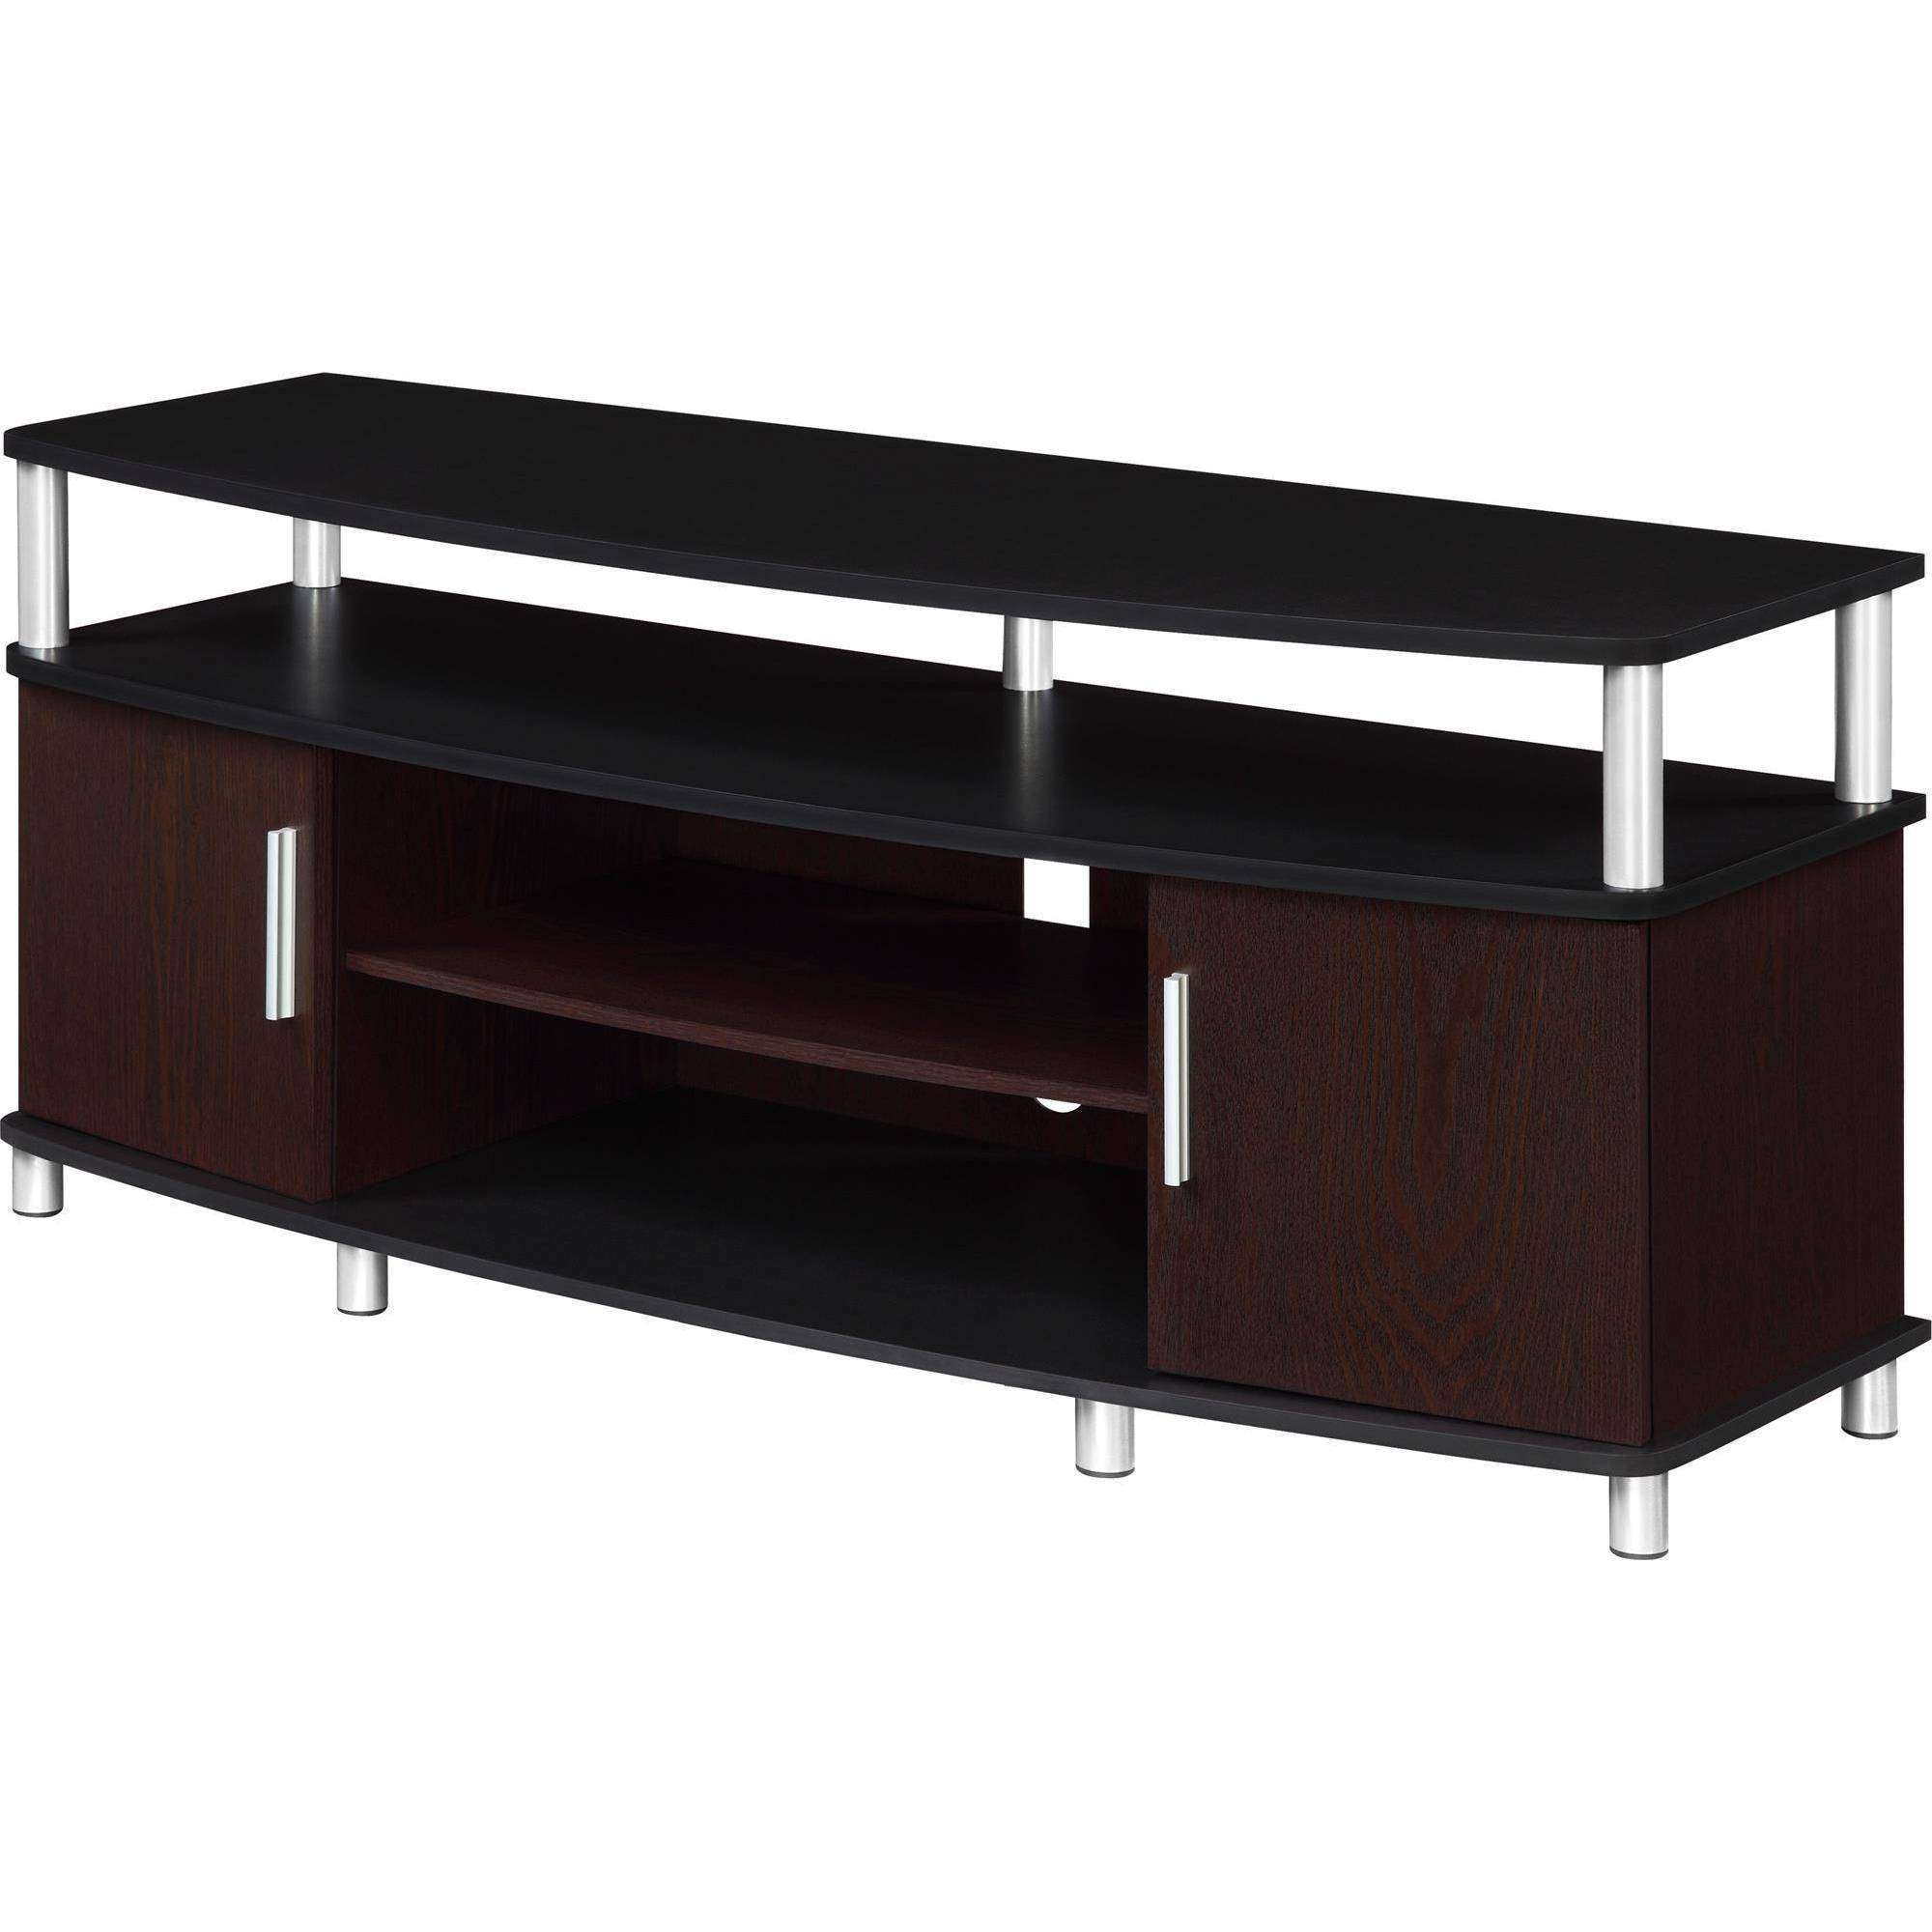 Carson Tv Stand For Tvs Up To Ddcb32a478e6 1 Stands Inch 50 Within Tv Stands For 50 Inch Tvs (View 12 of 15)